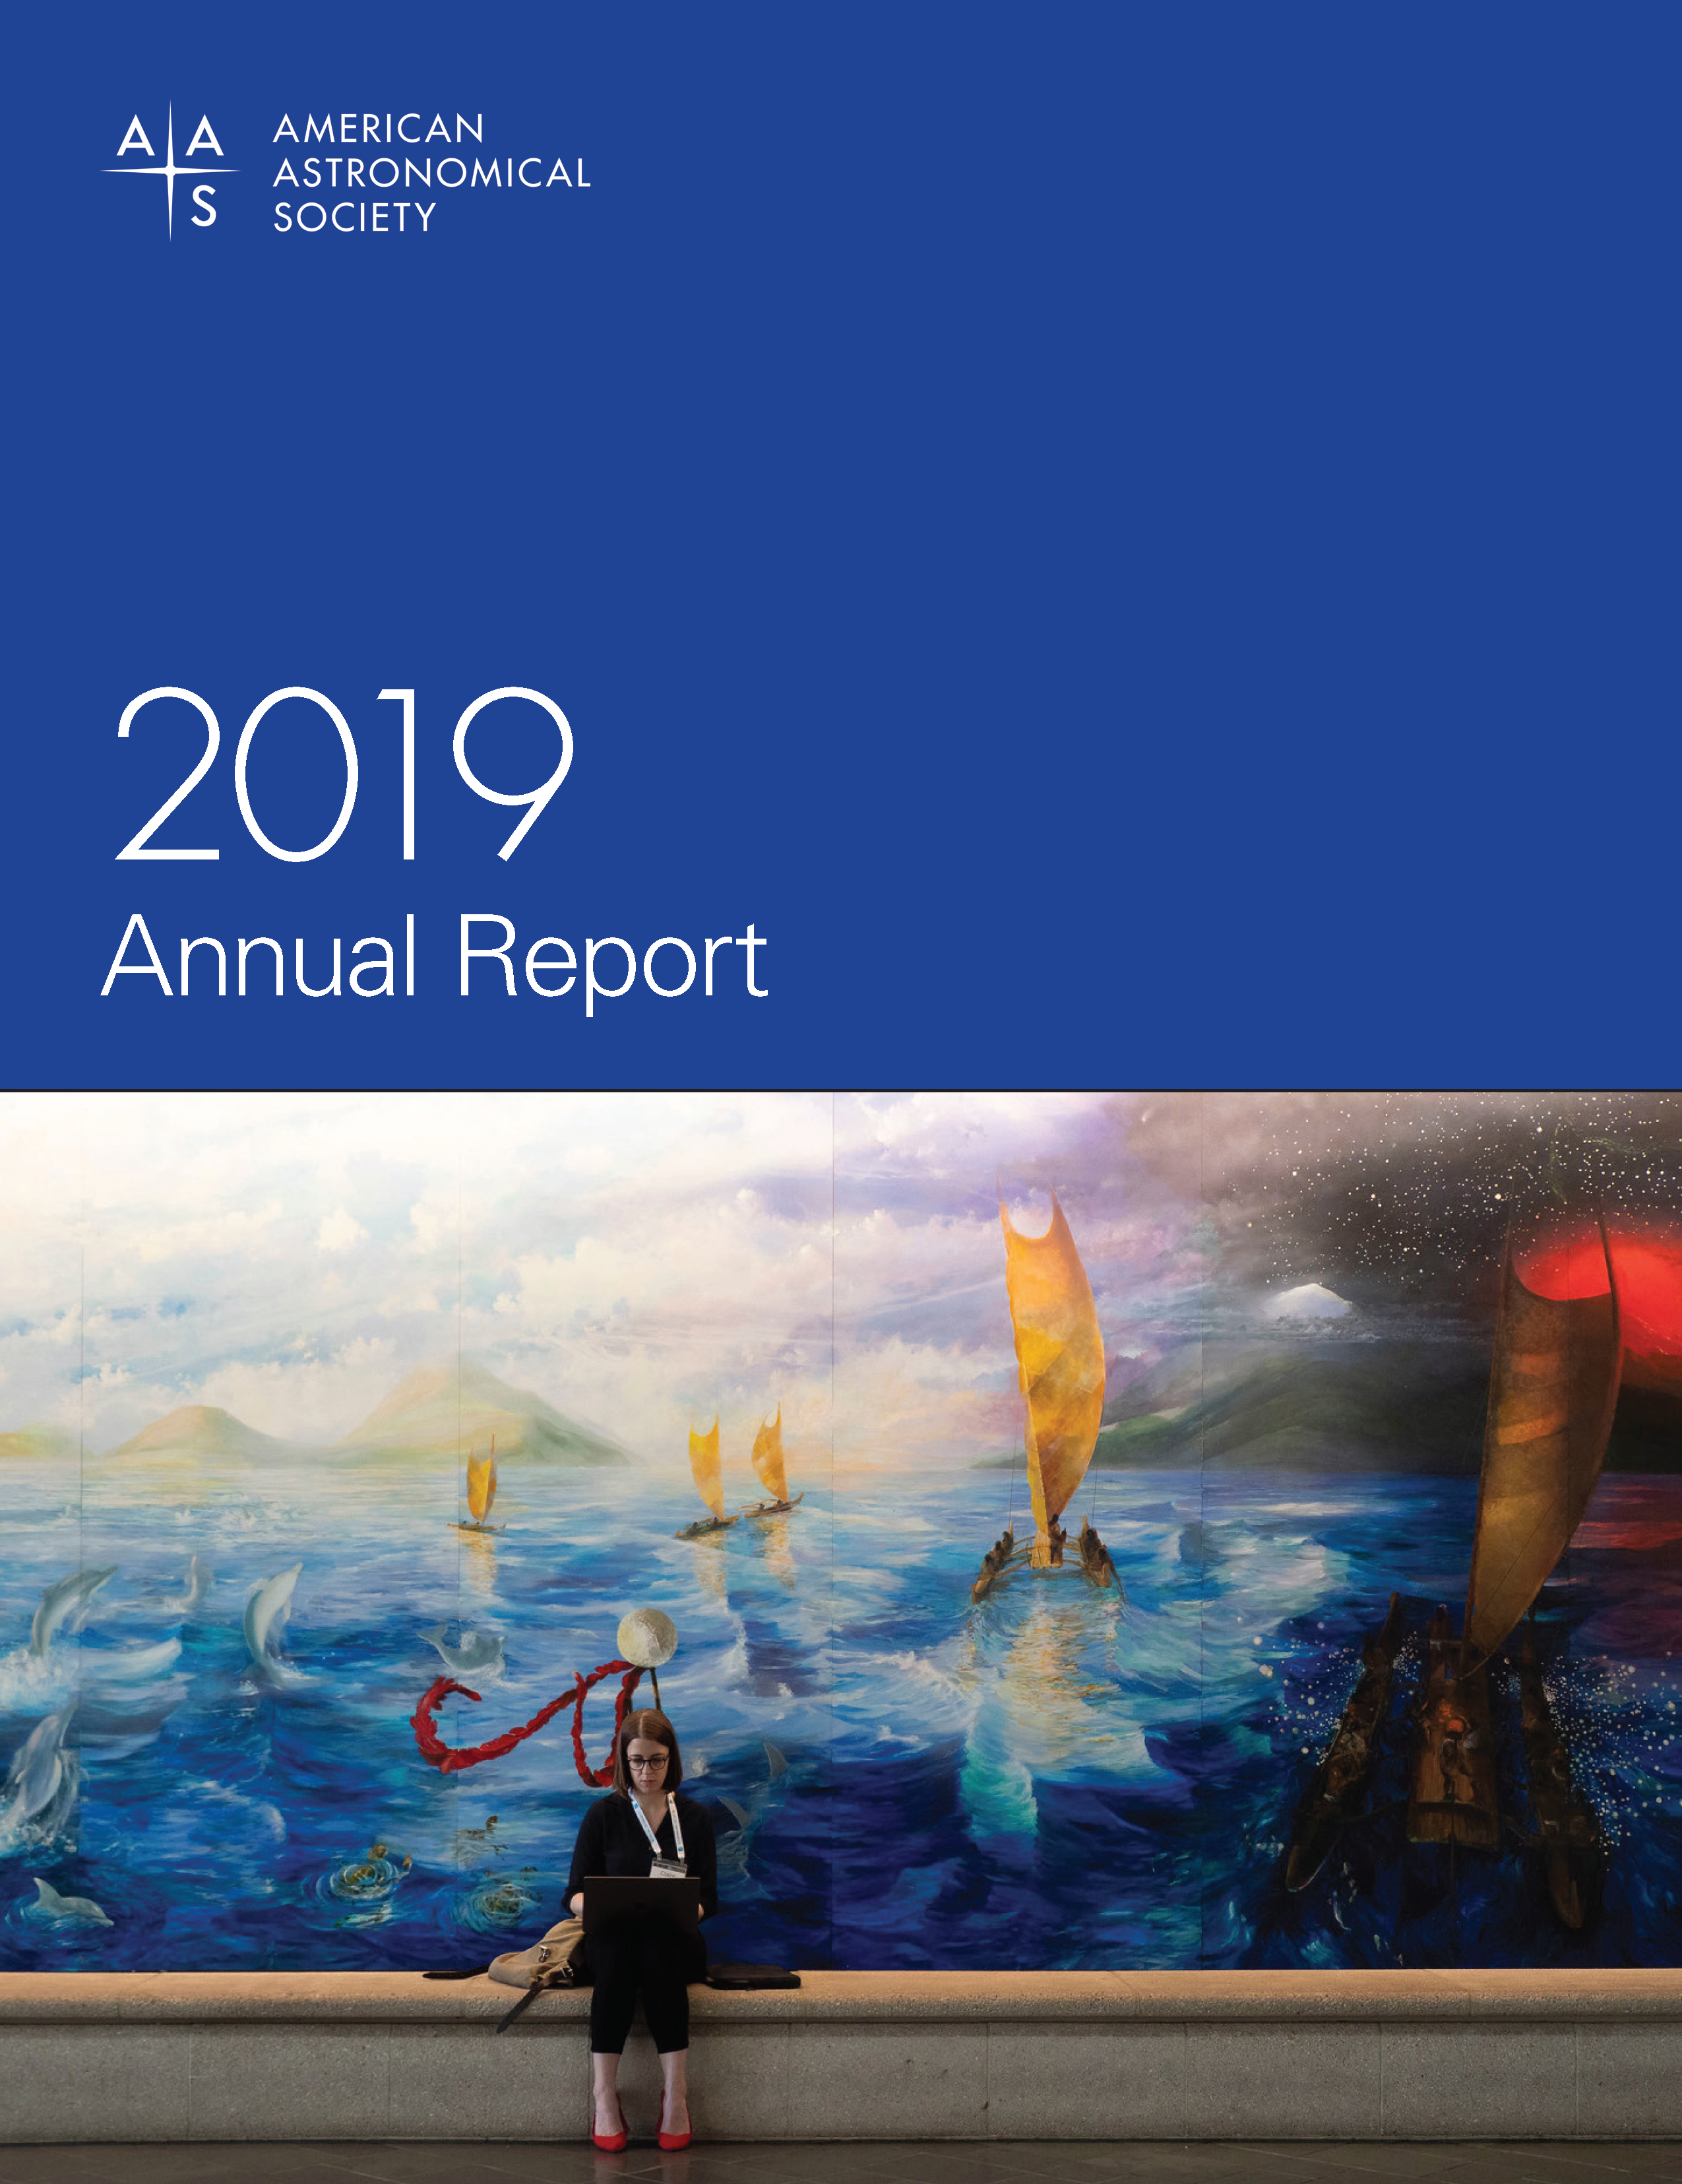 AAS 2019 Annual Report